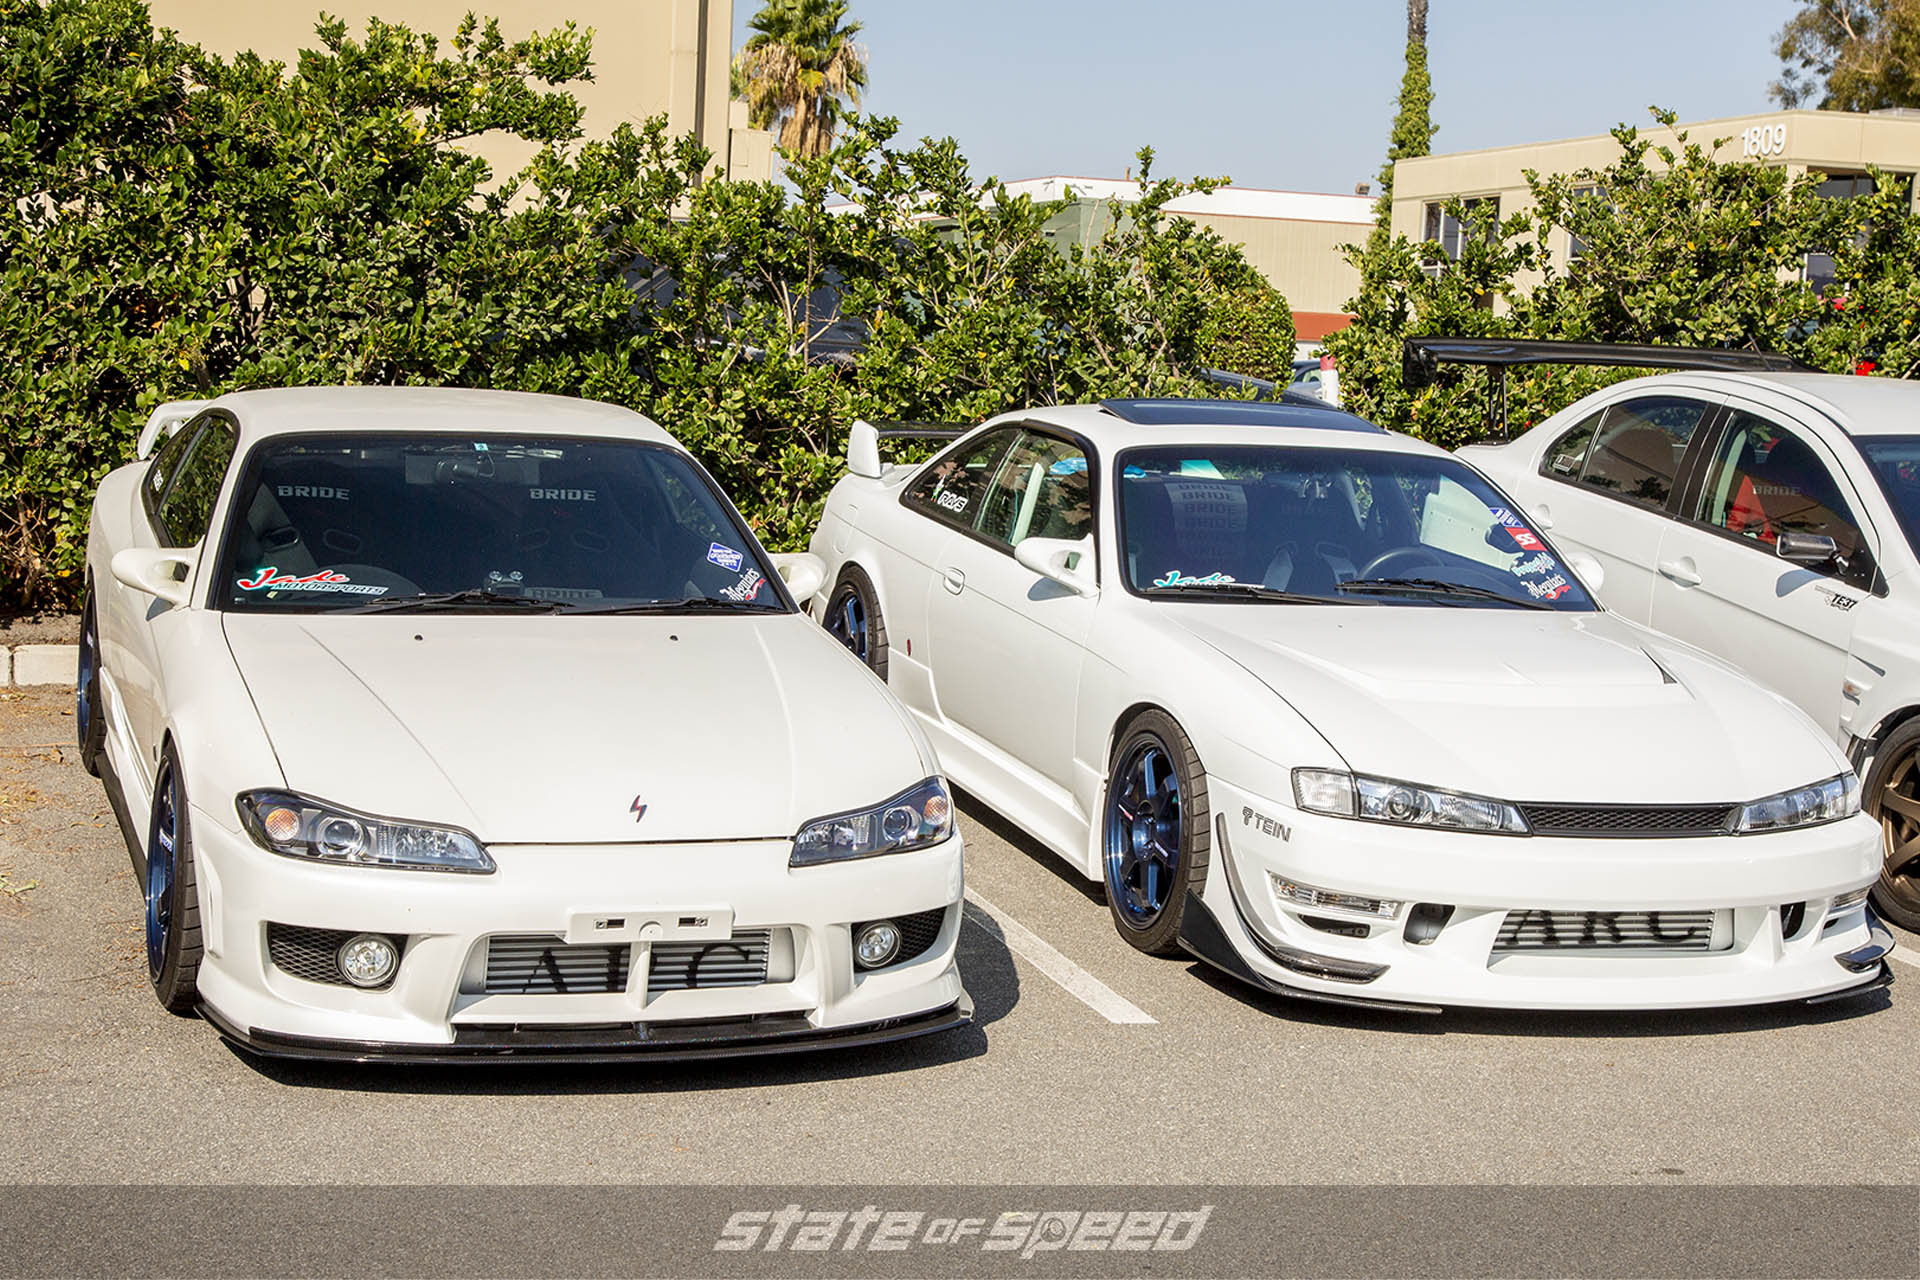 S15 and S14 at a meet